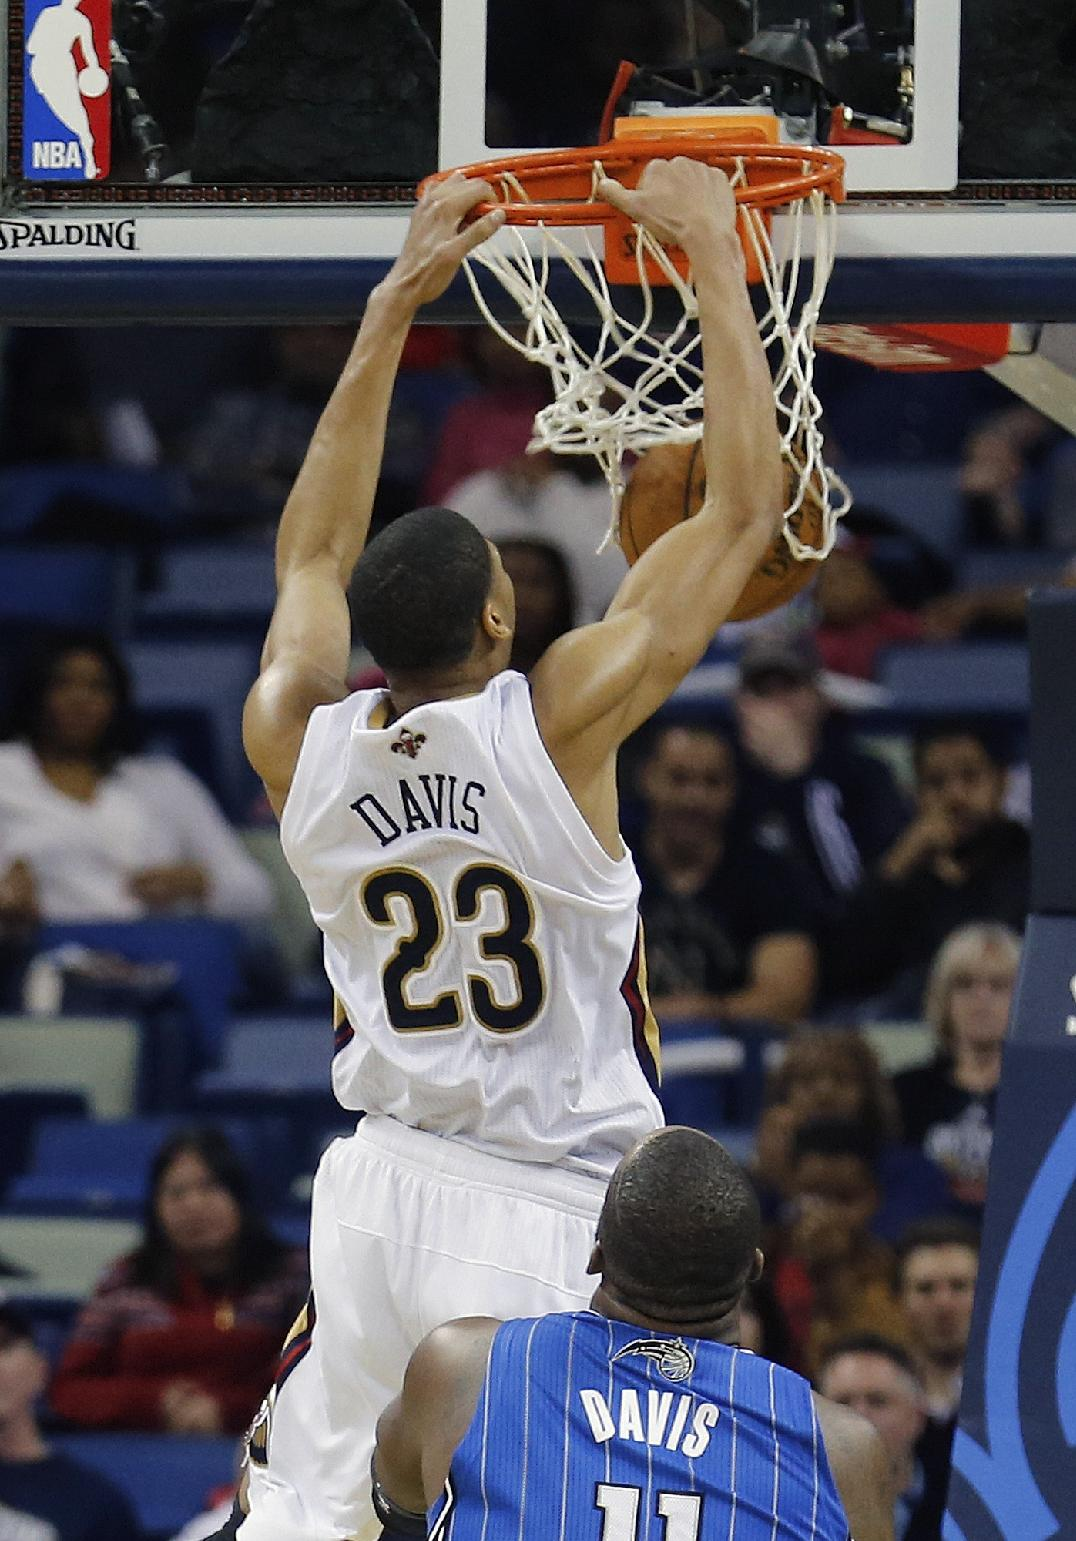 New Orleans Pelicans power forward Anthony Davis (23) scores in the second half of an NBA basketball game against the Orlando Magic in New Orleans, Sunday, Jan. 26, 2014. The Pelicans defeated the Magic 100-92. Davis scored 22 points and had a career-high 19 rebounds and seven blocked shots